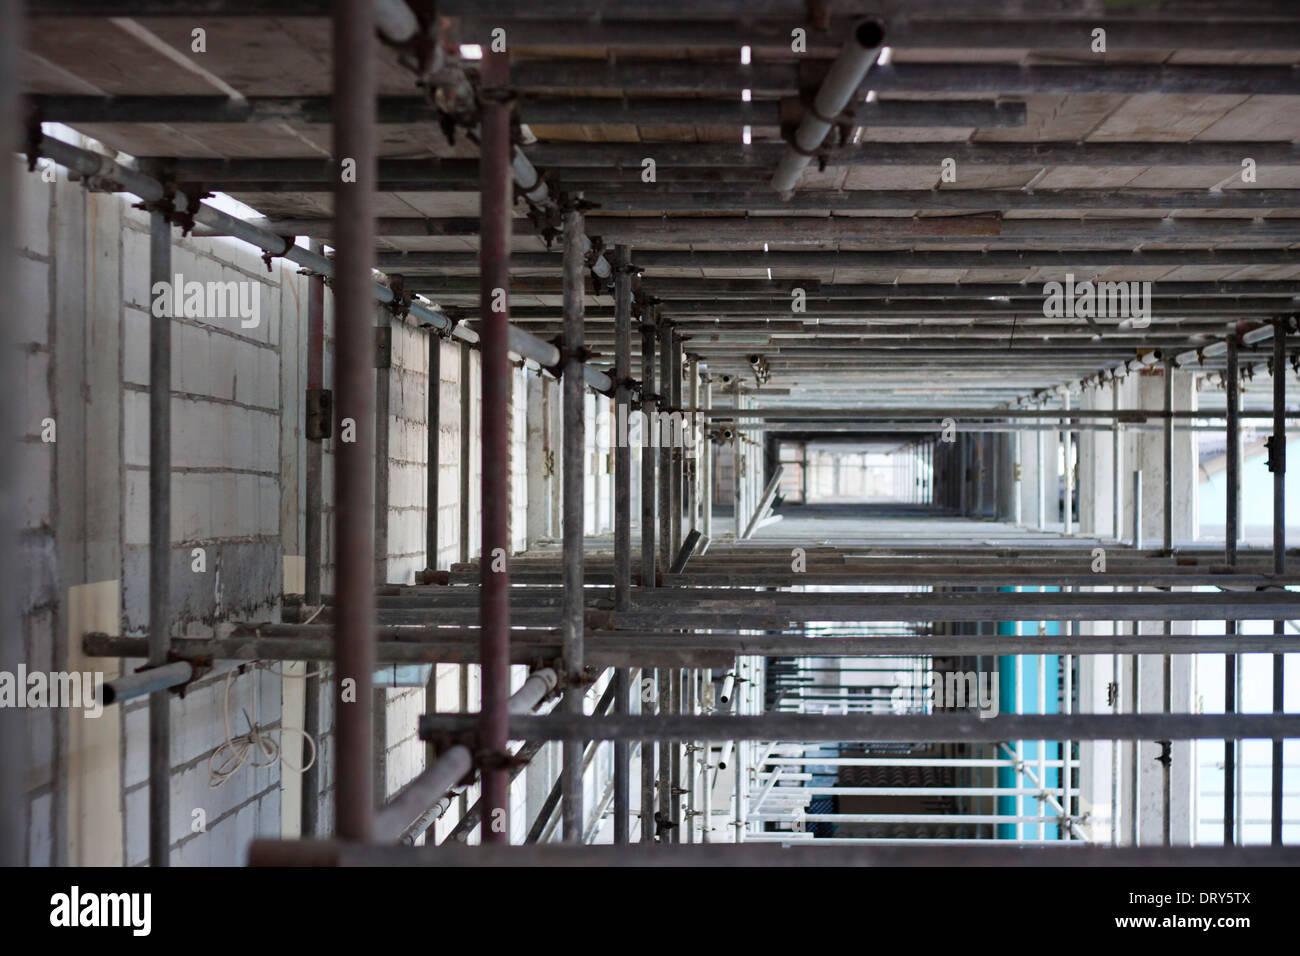 Detail of metal scaffolding on the building. - Stock Image